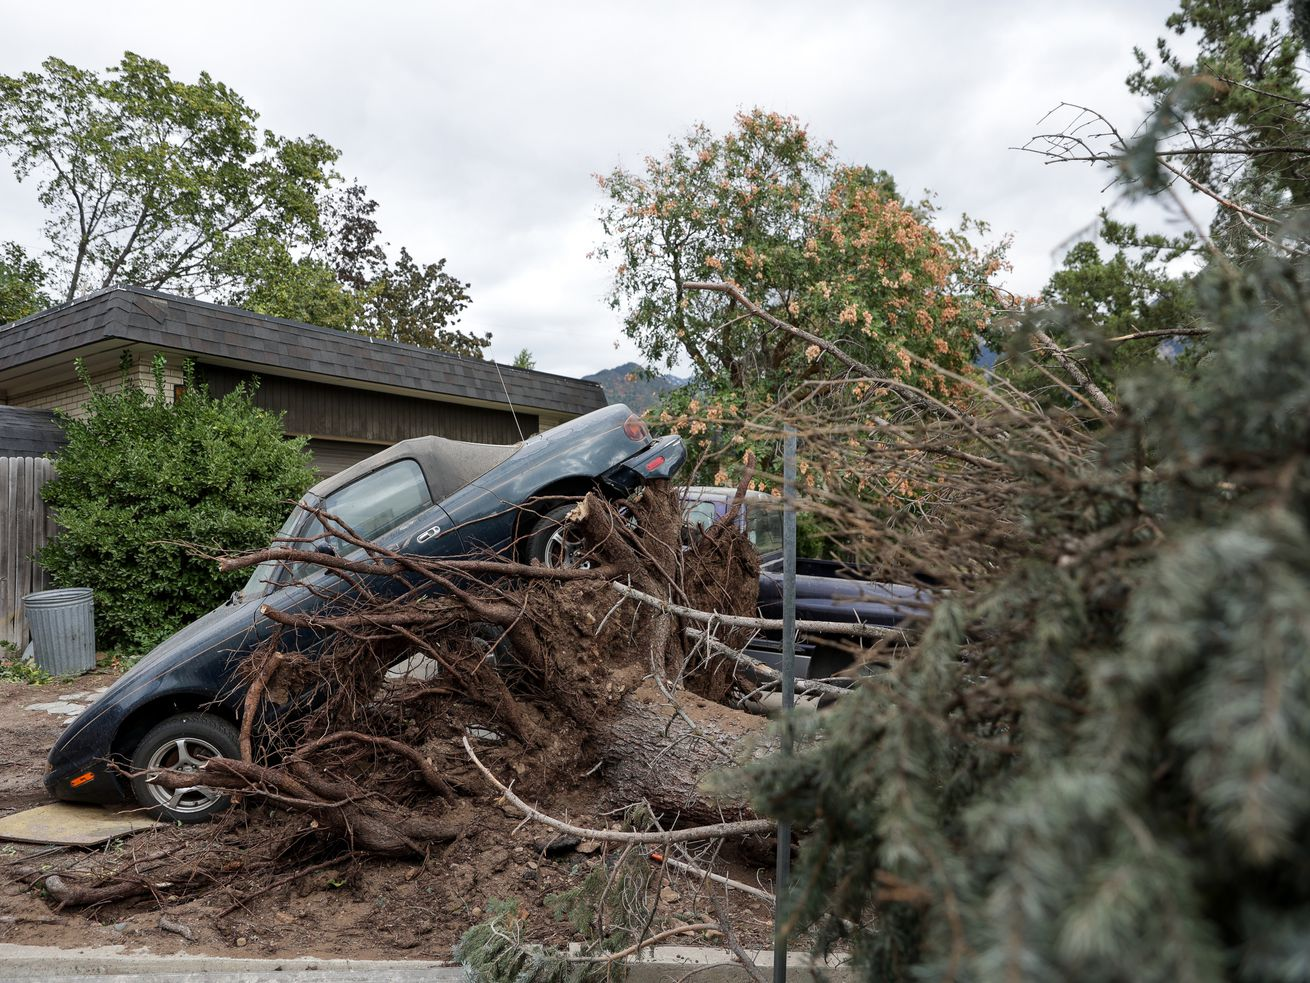 The roots of a tree felled by high winds lifted a car into the air in Millcreek on Tuesday, Sept. 8, 2020. On Wednesday, Jan. 13, the Federal Emergency Management Agency announced President Donald Trump signed a major disaster declaration on Jan. 12 for the damage done during the storm.